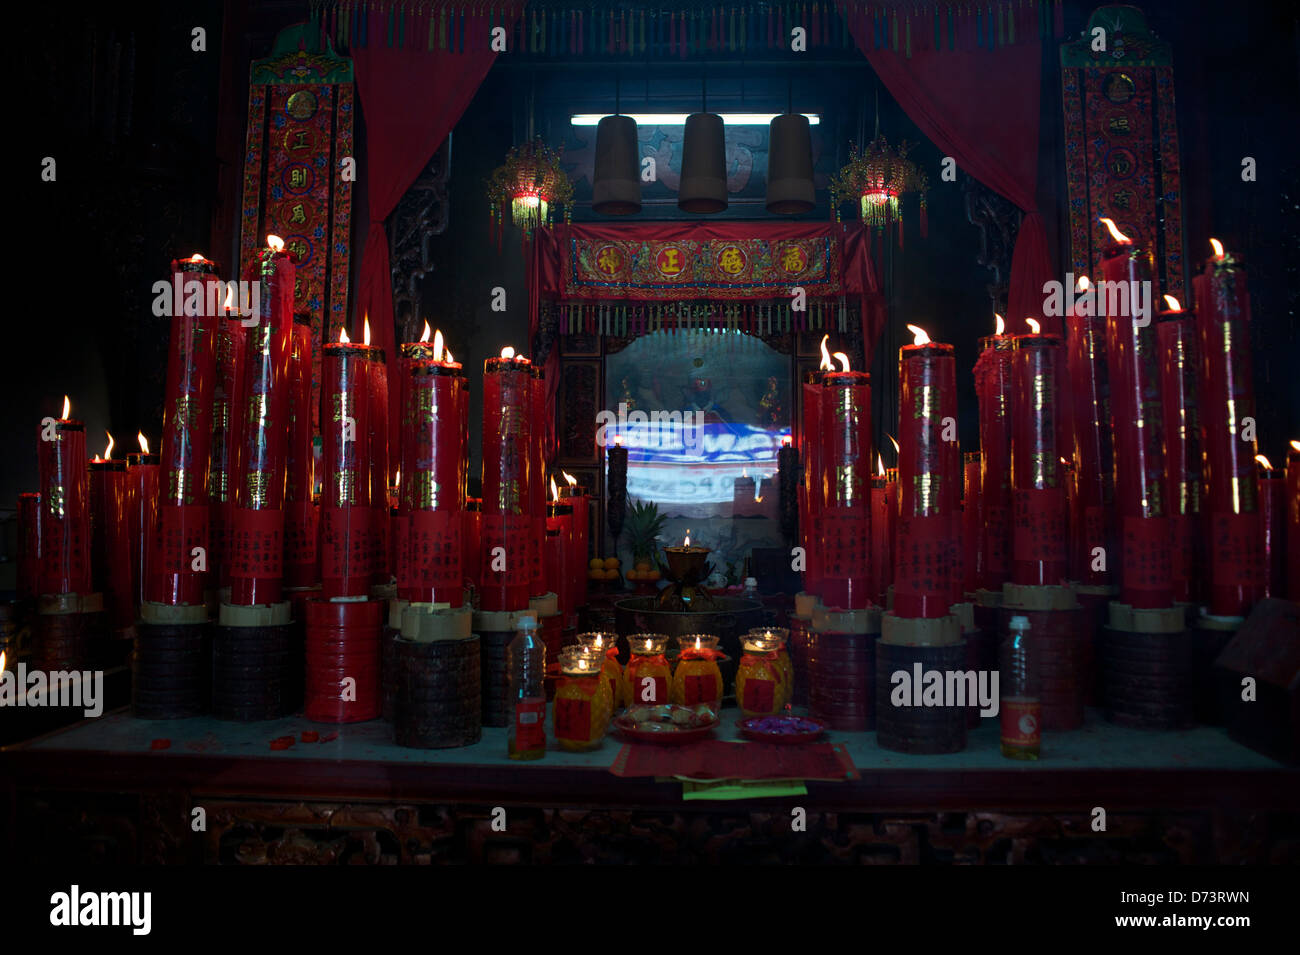 temple candles - Stock Image